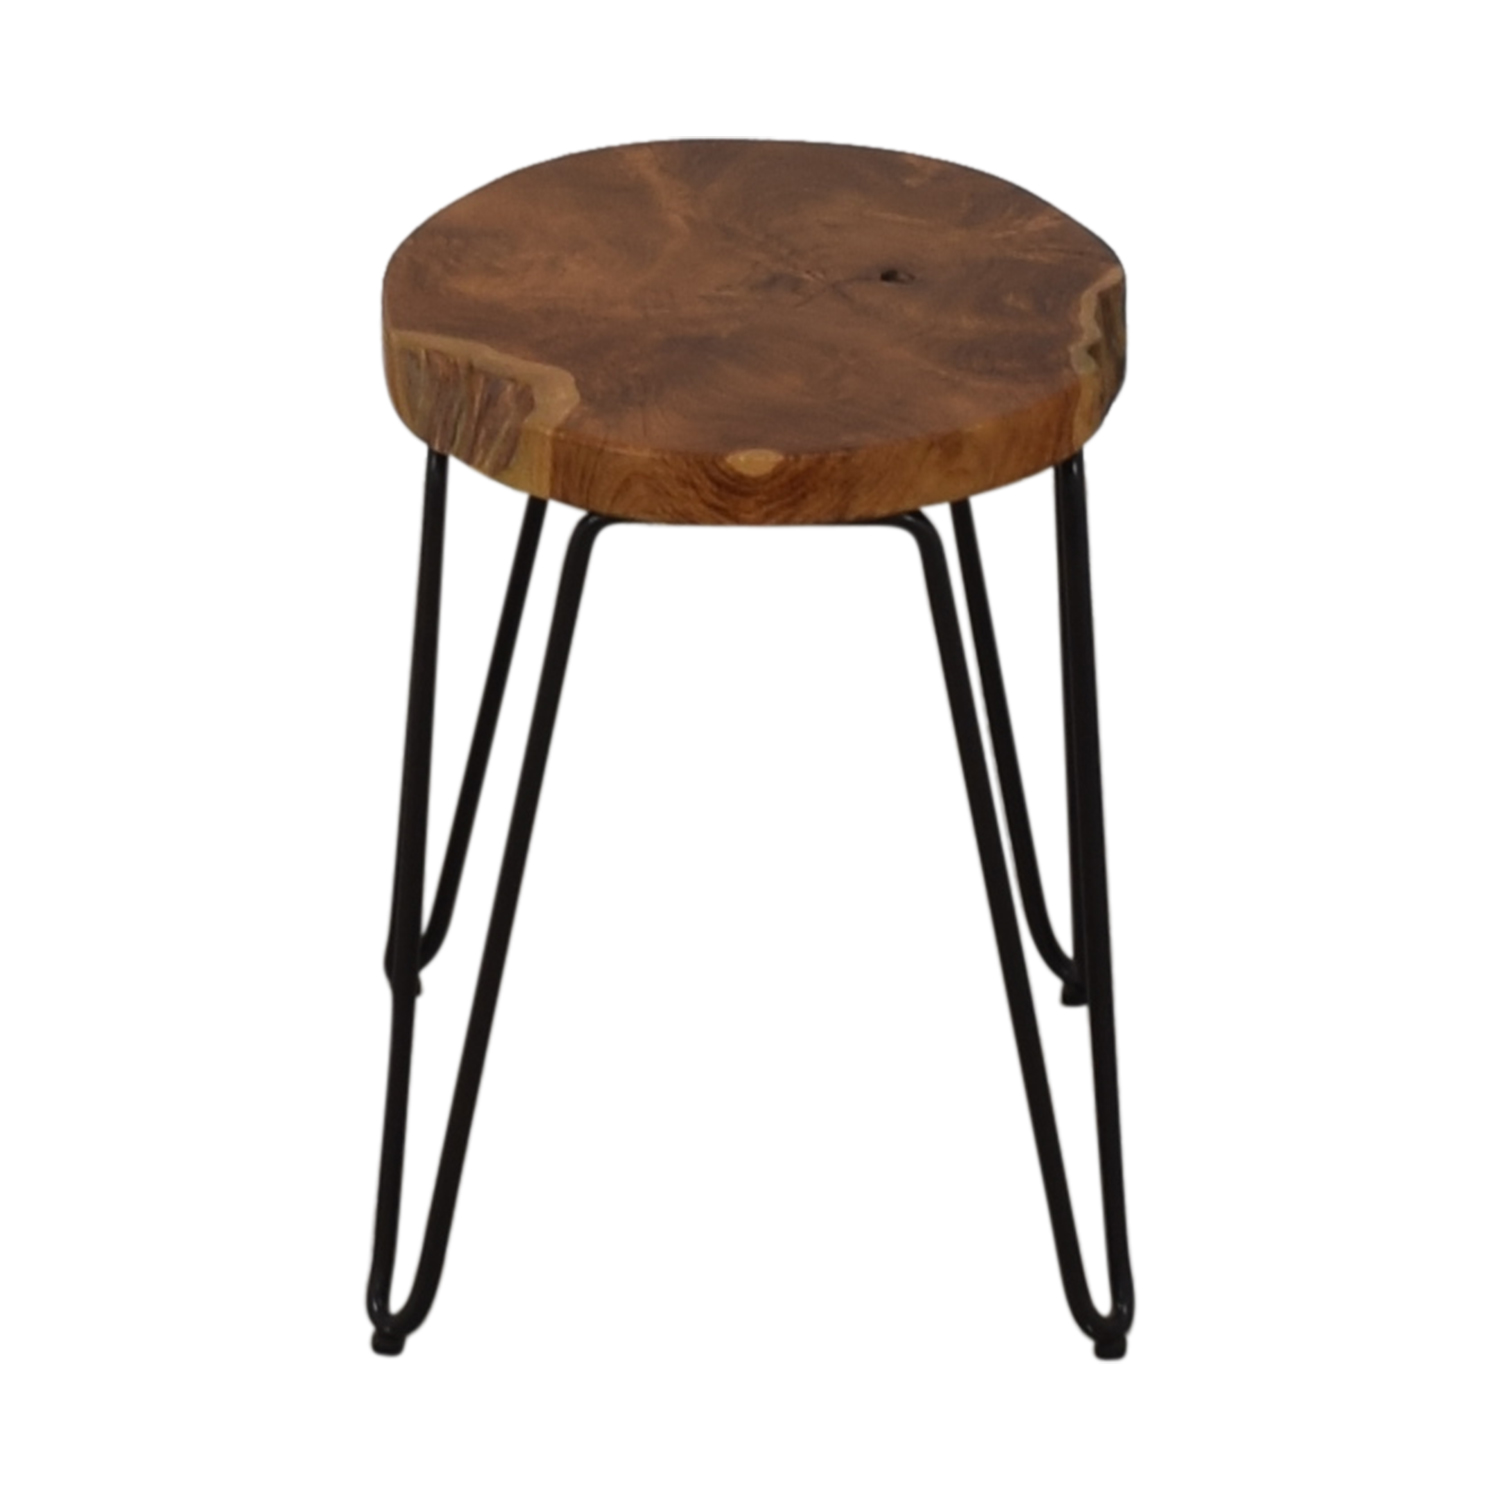 buy Crate & Barrel Distressed Wood Stool Crate & Barrel